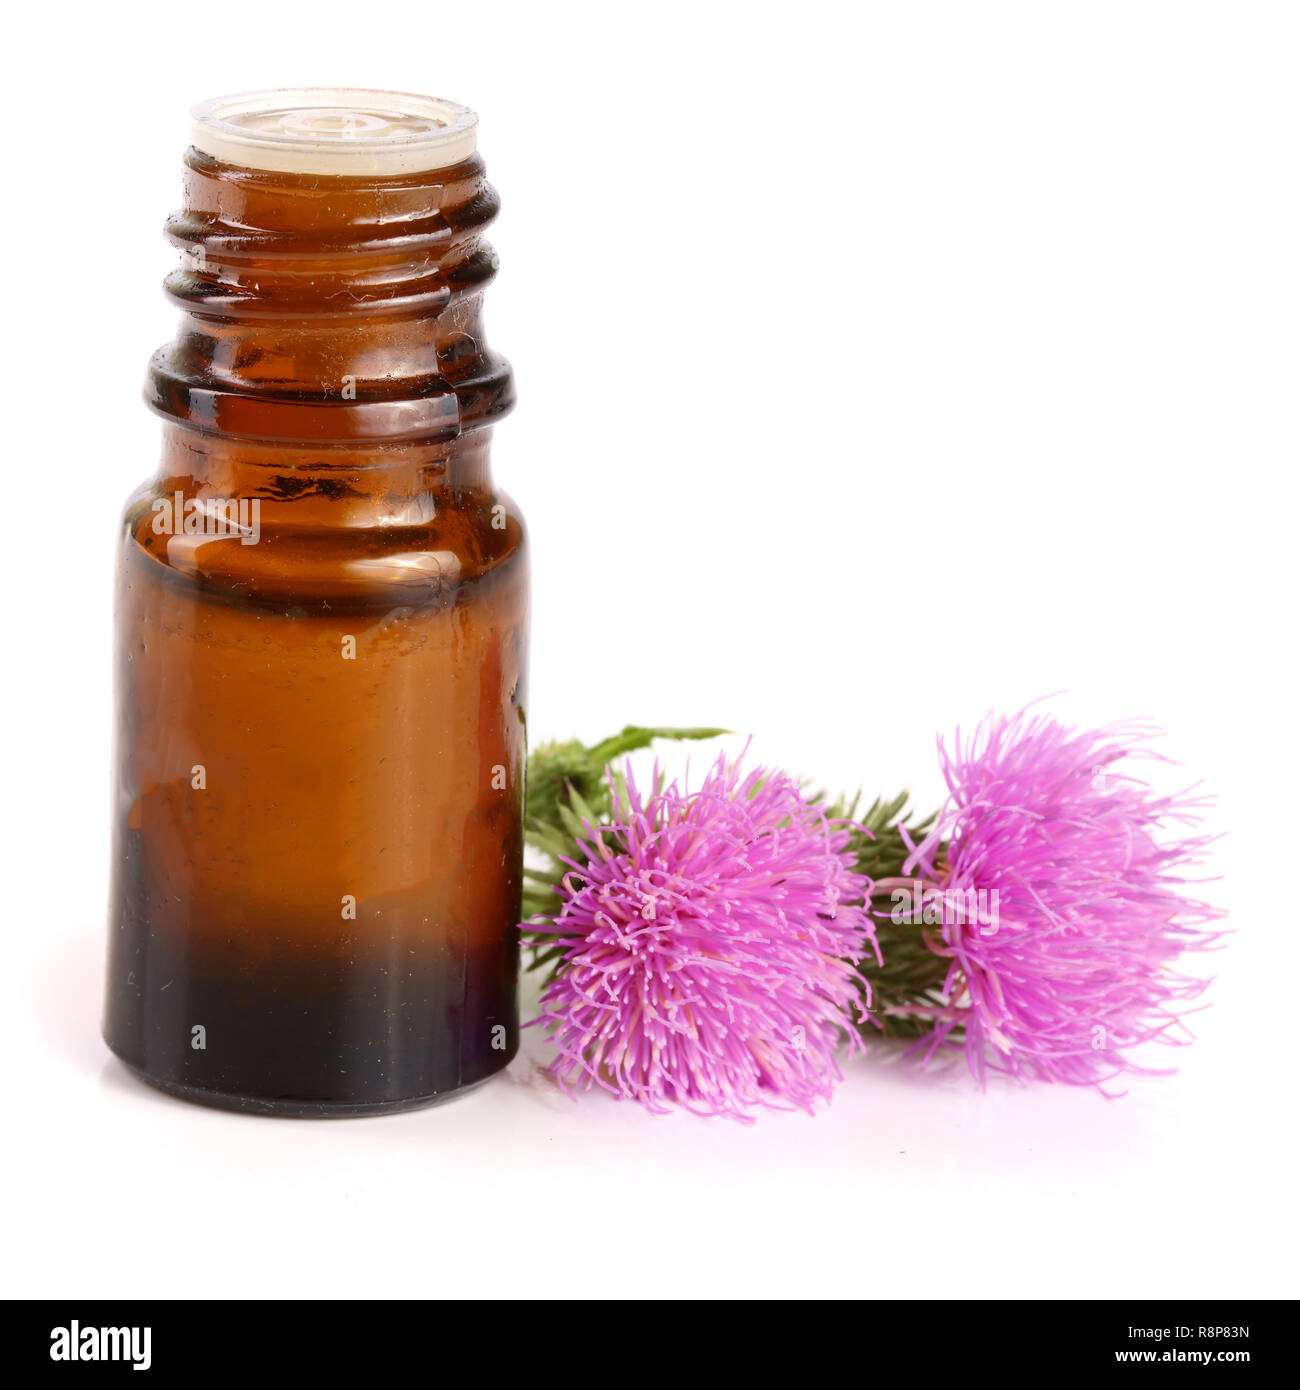 thistle oil and milk thistle flower isolated on white background - Stock Image